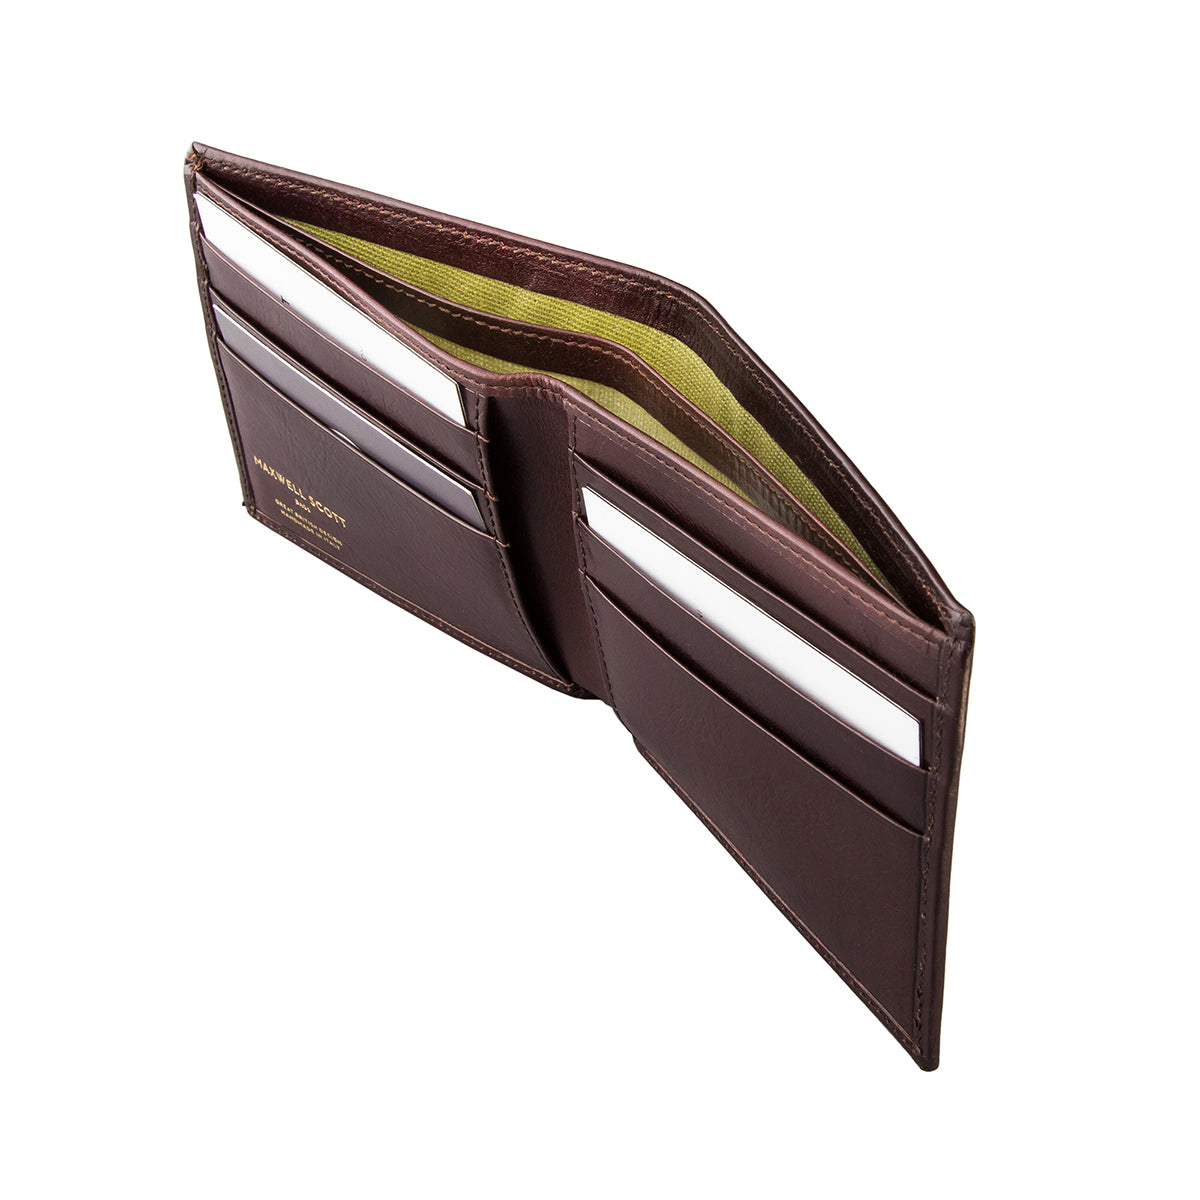 Image 4 of the 'Vittore' Dark Chocolate Veg-Tanned Leather Bi-Fold Wallet